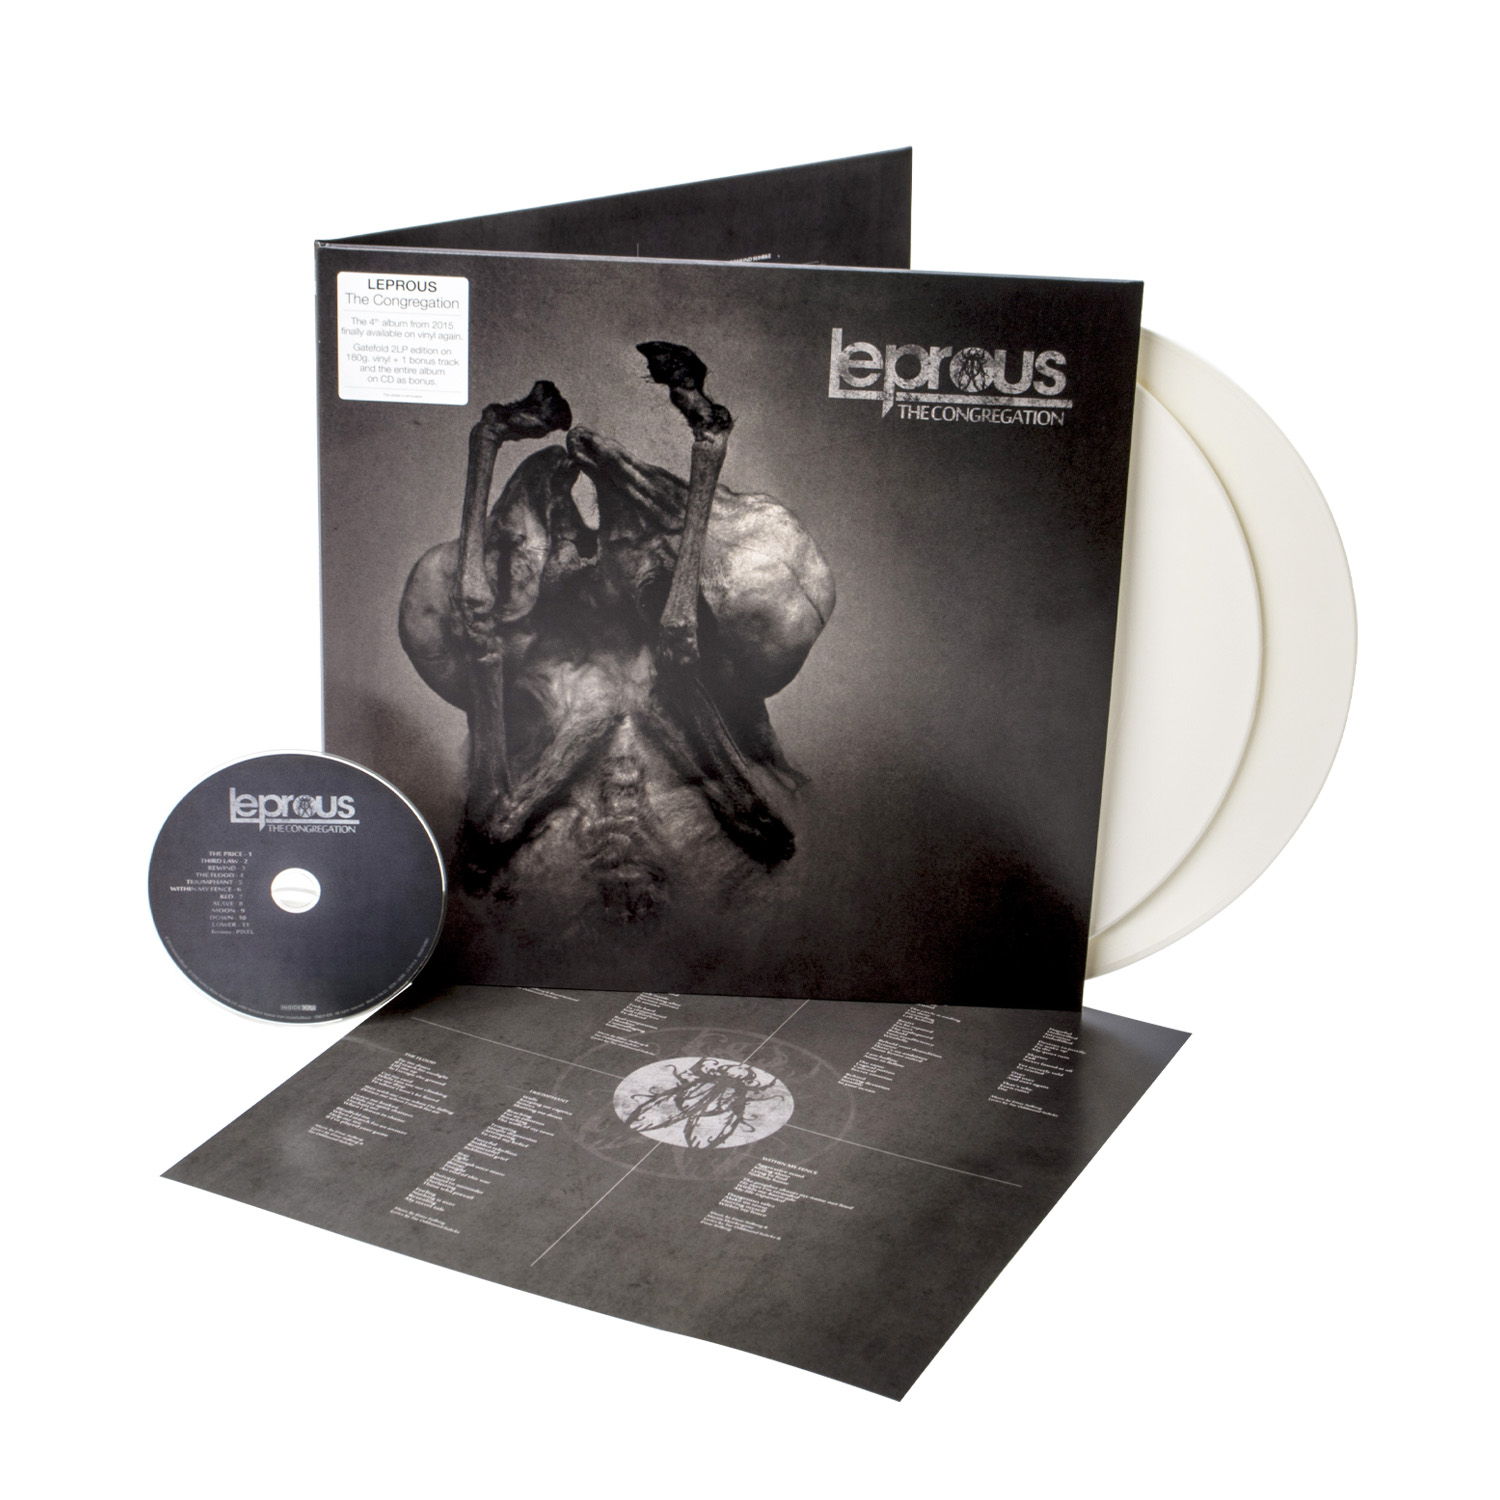 Leprous - The Congregation (Re-issue 2020) White 2LP + CD